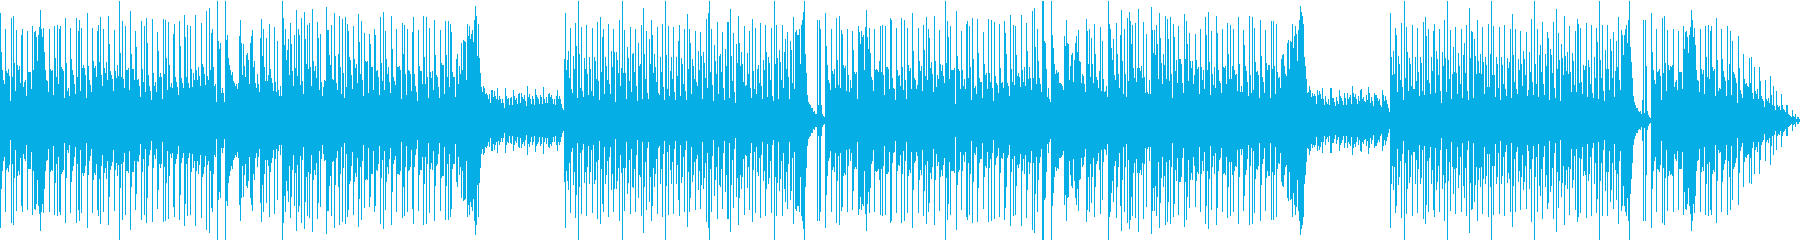 For the appearance scene of comical villains, etc.'s reproduced waveform